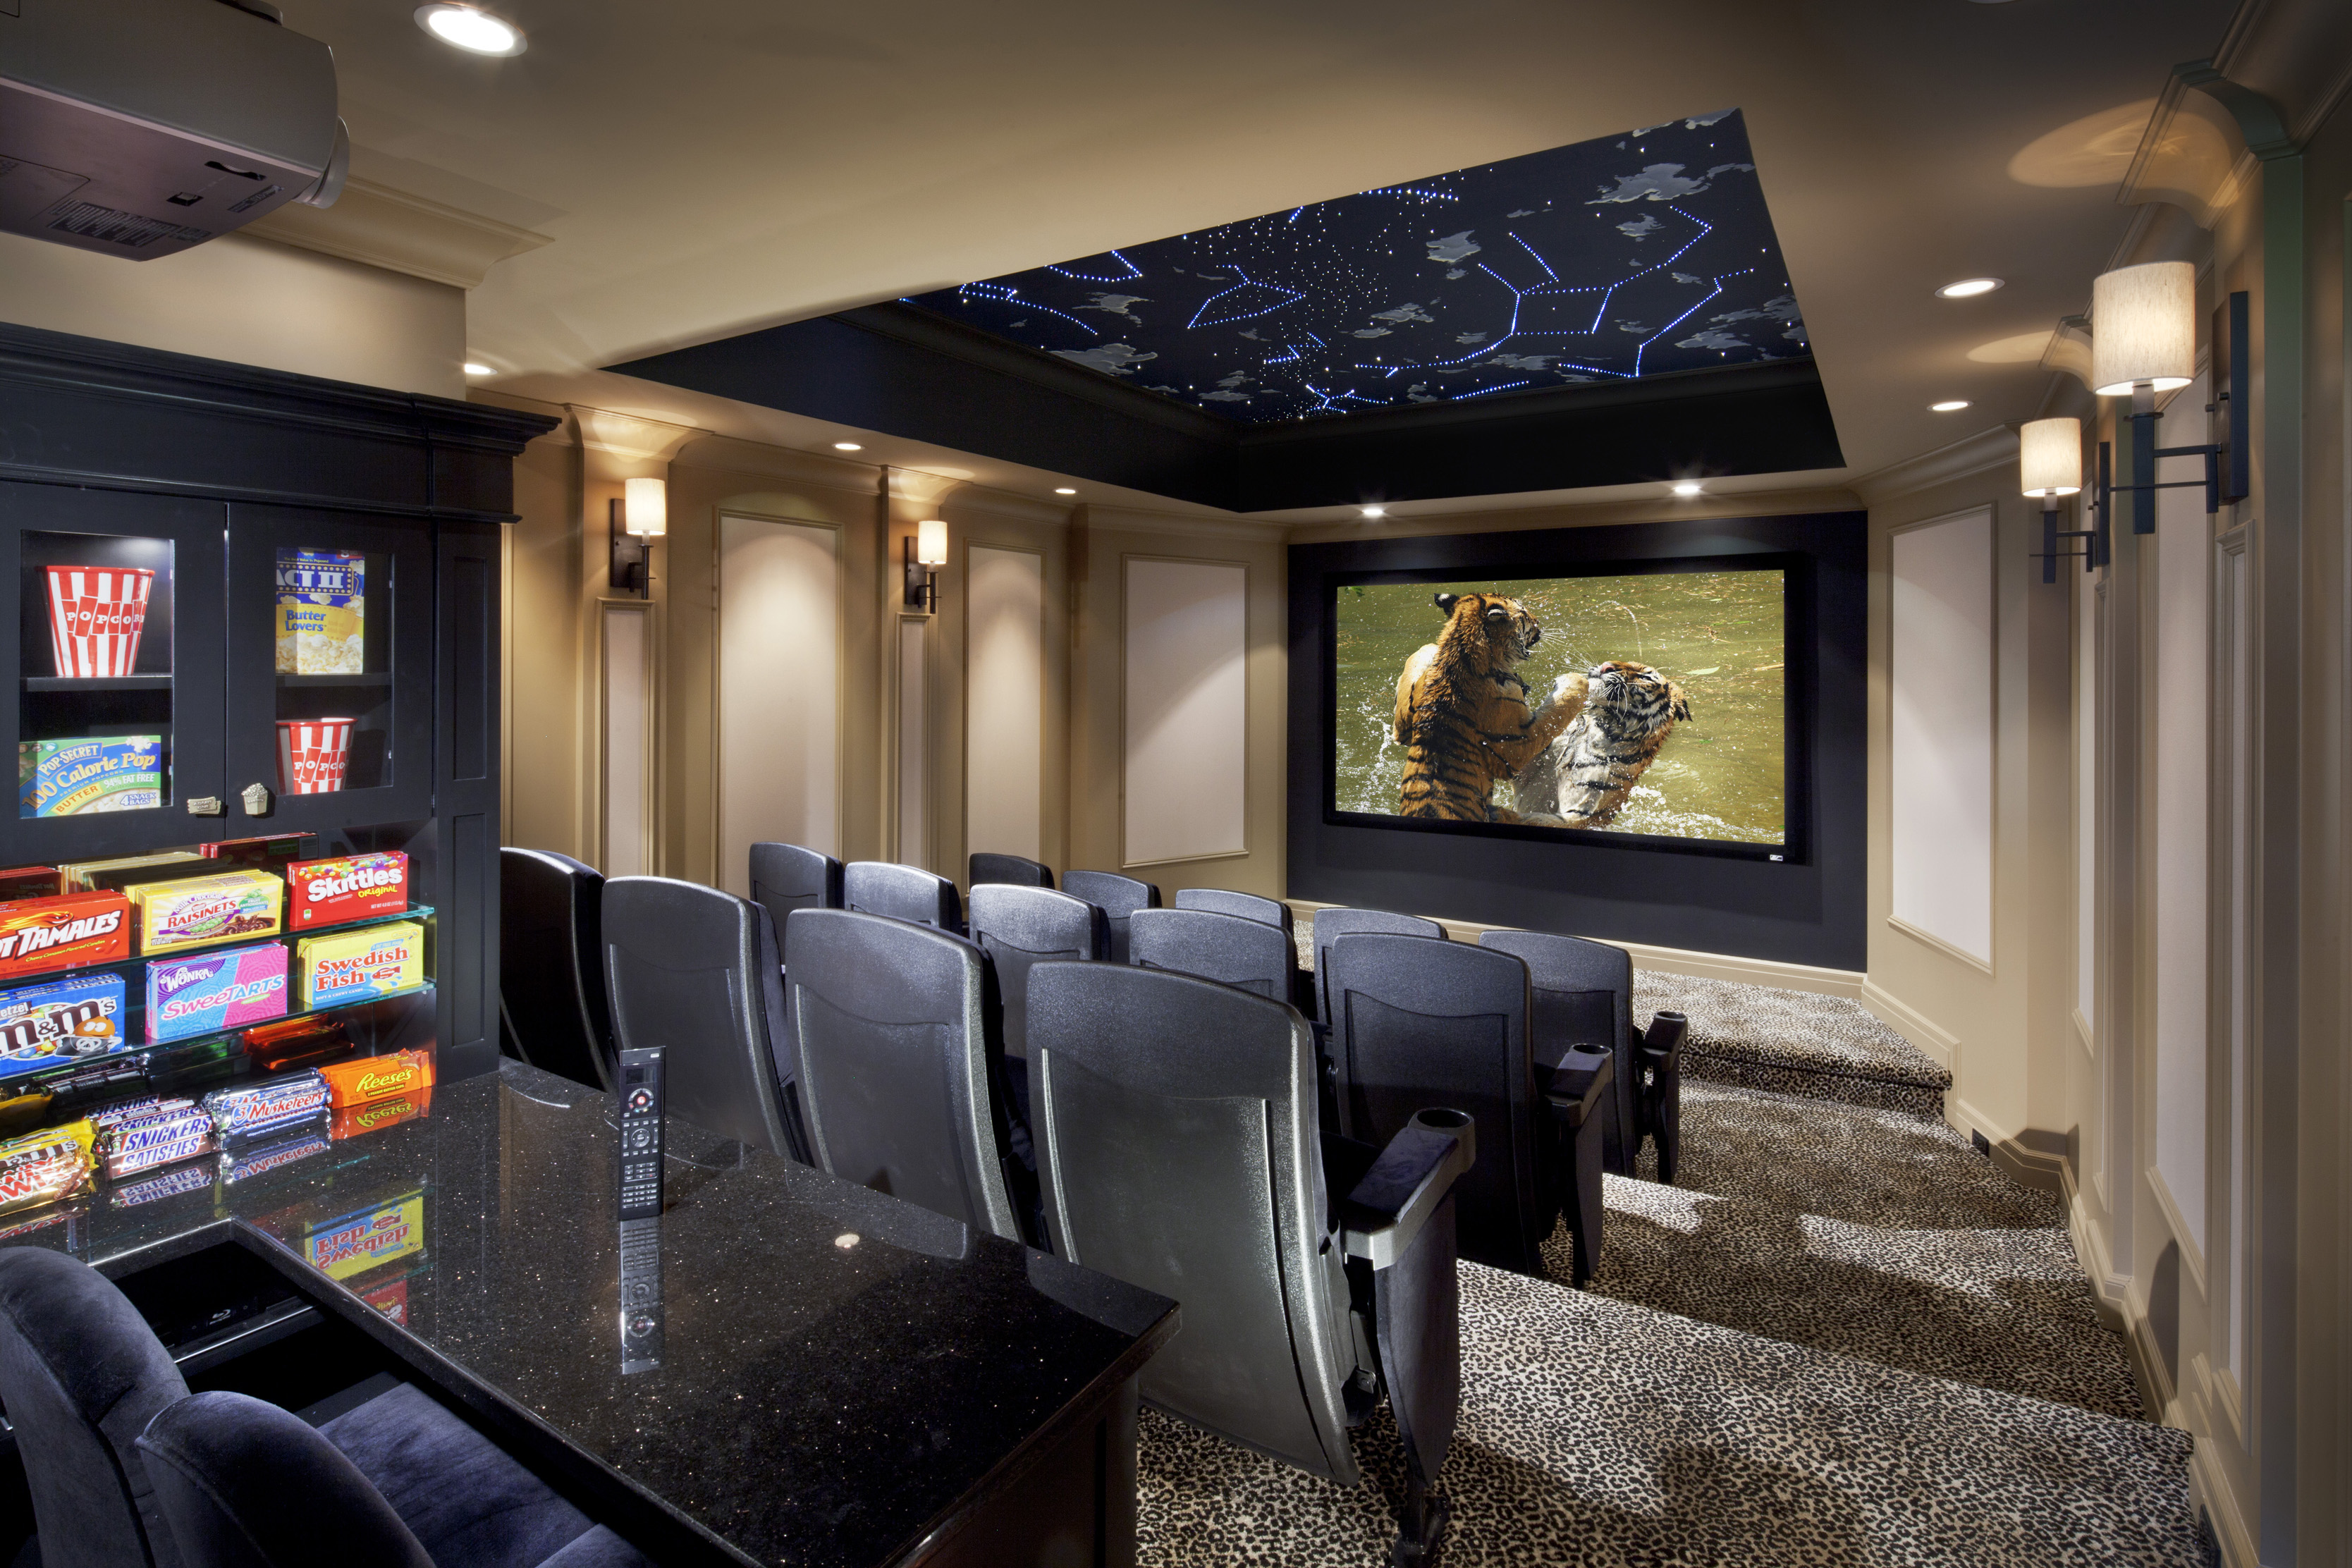 Home Theater Design Group home theater design group home theater design group home and home theater design group Cedia 2012 Best Home Theaterhome Theater With A Ceiling That Reflects The Evening Sky